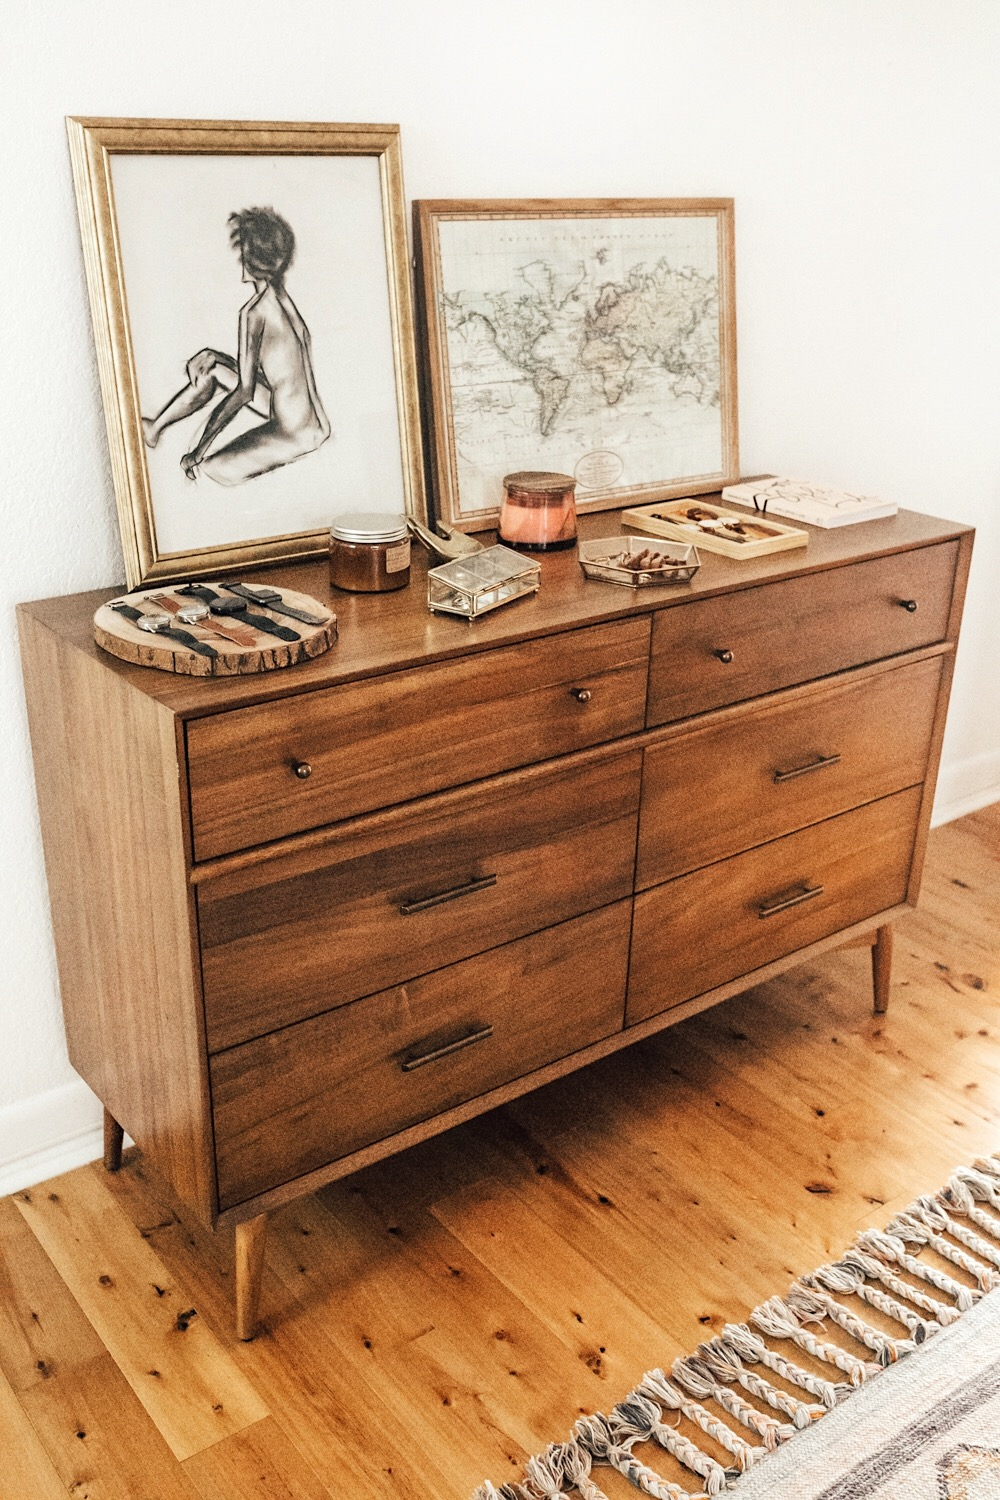 bedroom dresser top decor livvyland austin fashion and 10419 | livvyland blog olivia watson urban outfitters bohemian dresser top decorating jewelry storage home decor 6